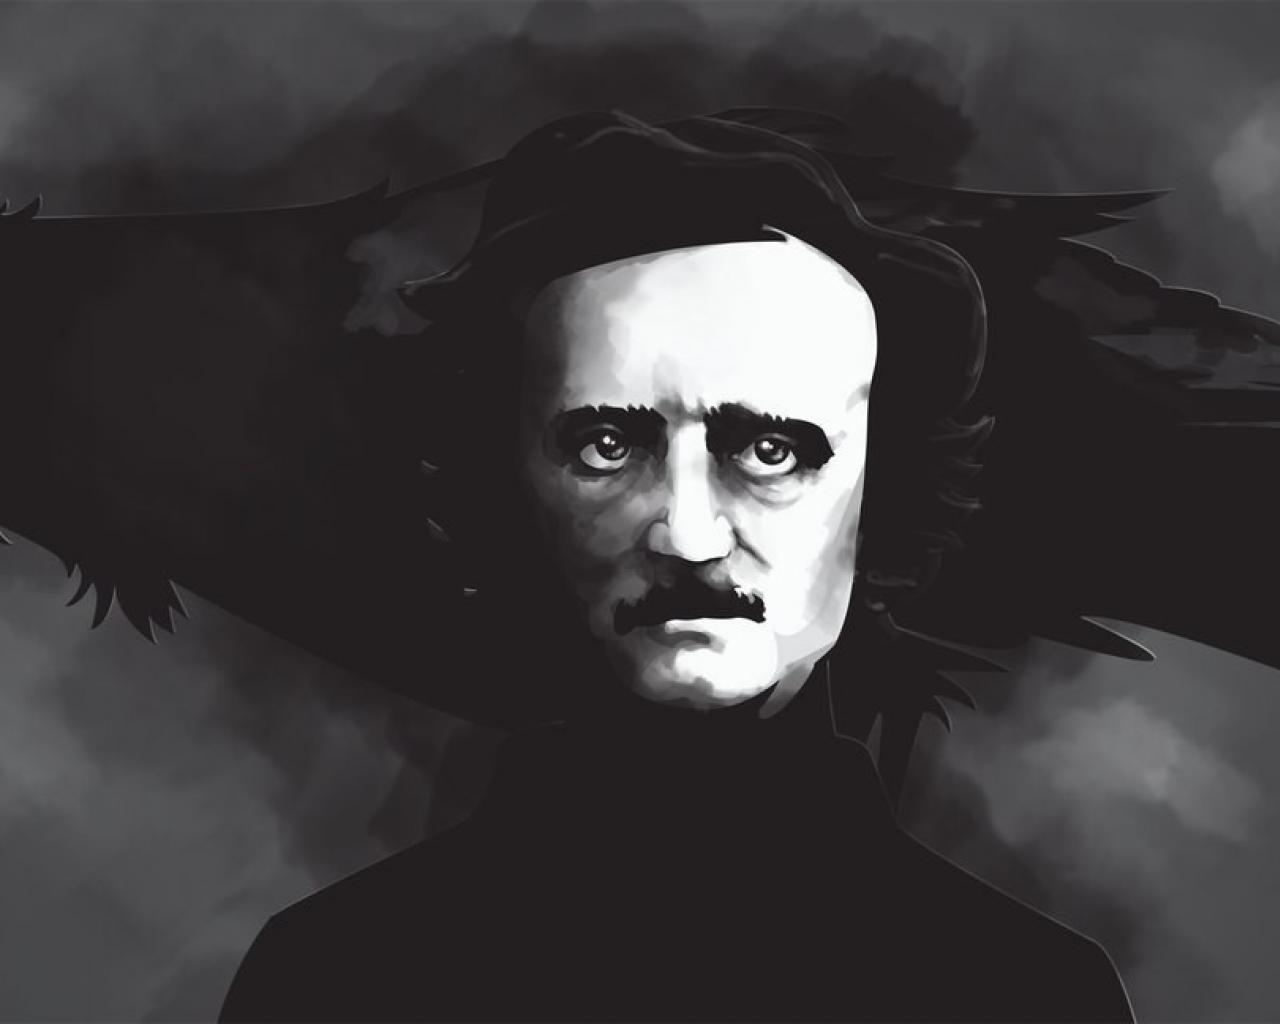 White artwork writers edgar allan poe ravens wallpaper 44044 1280x1024